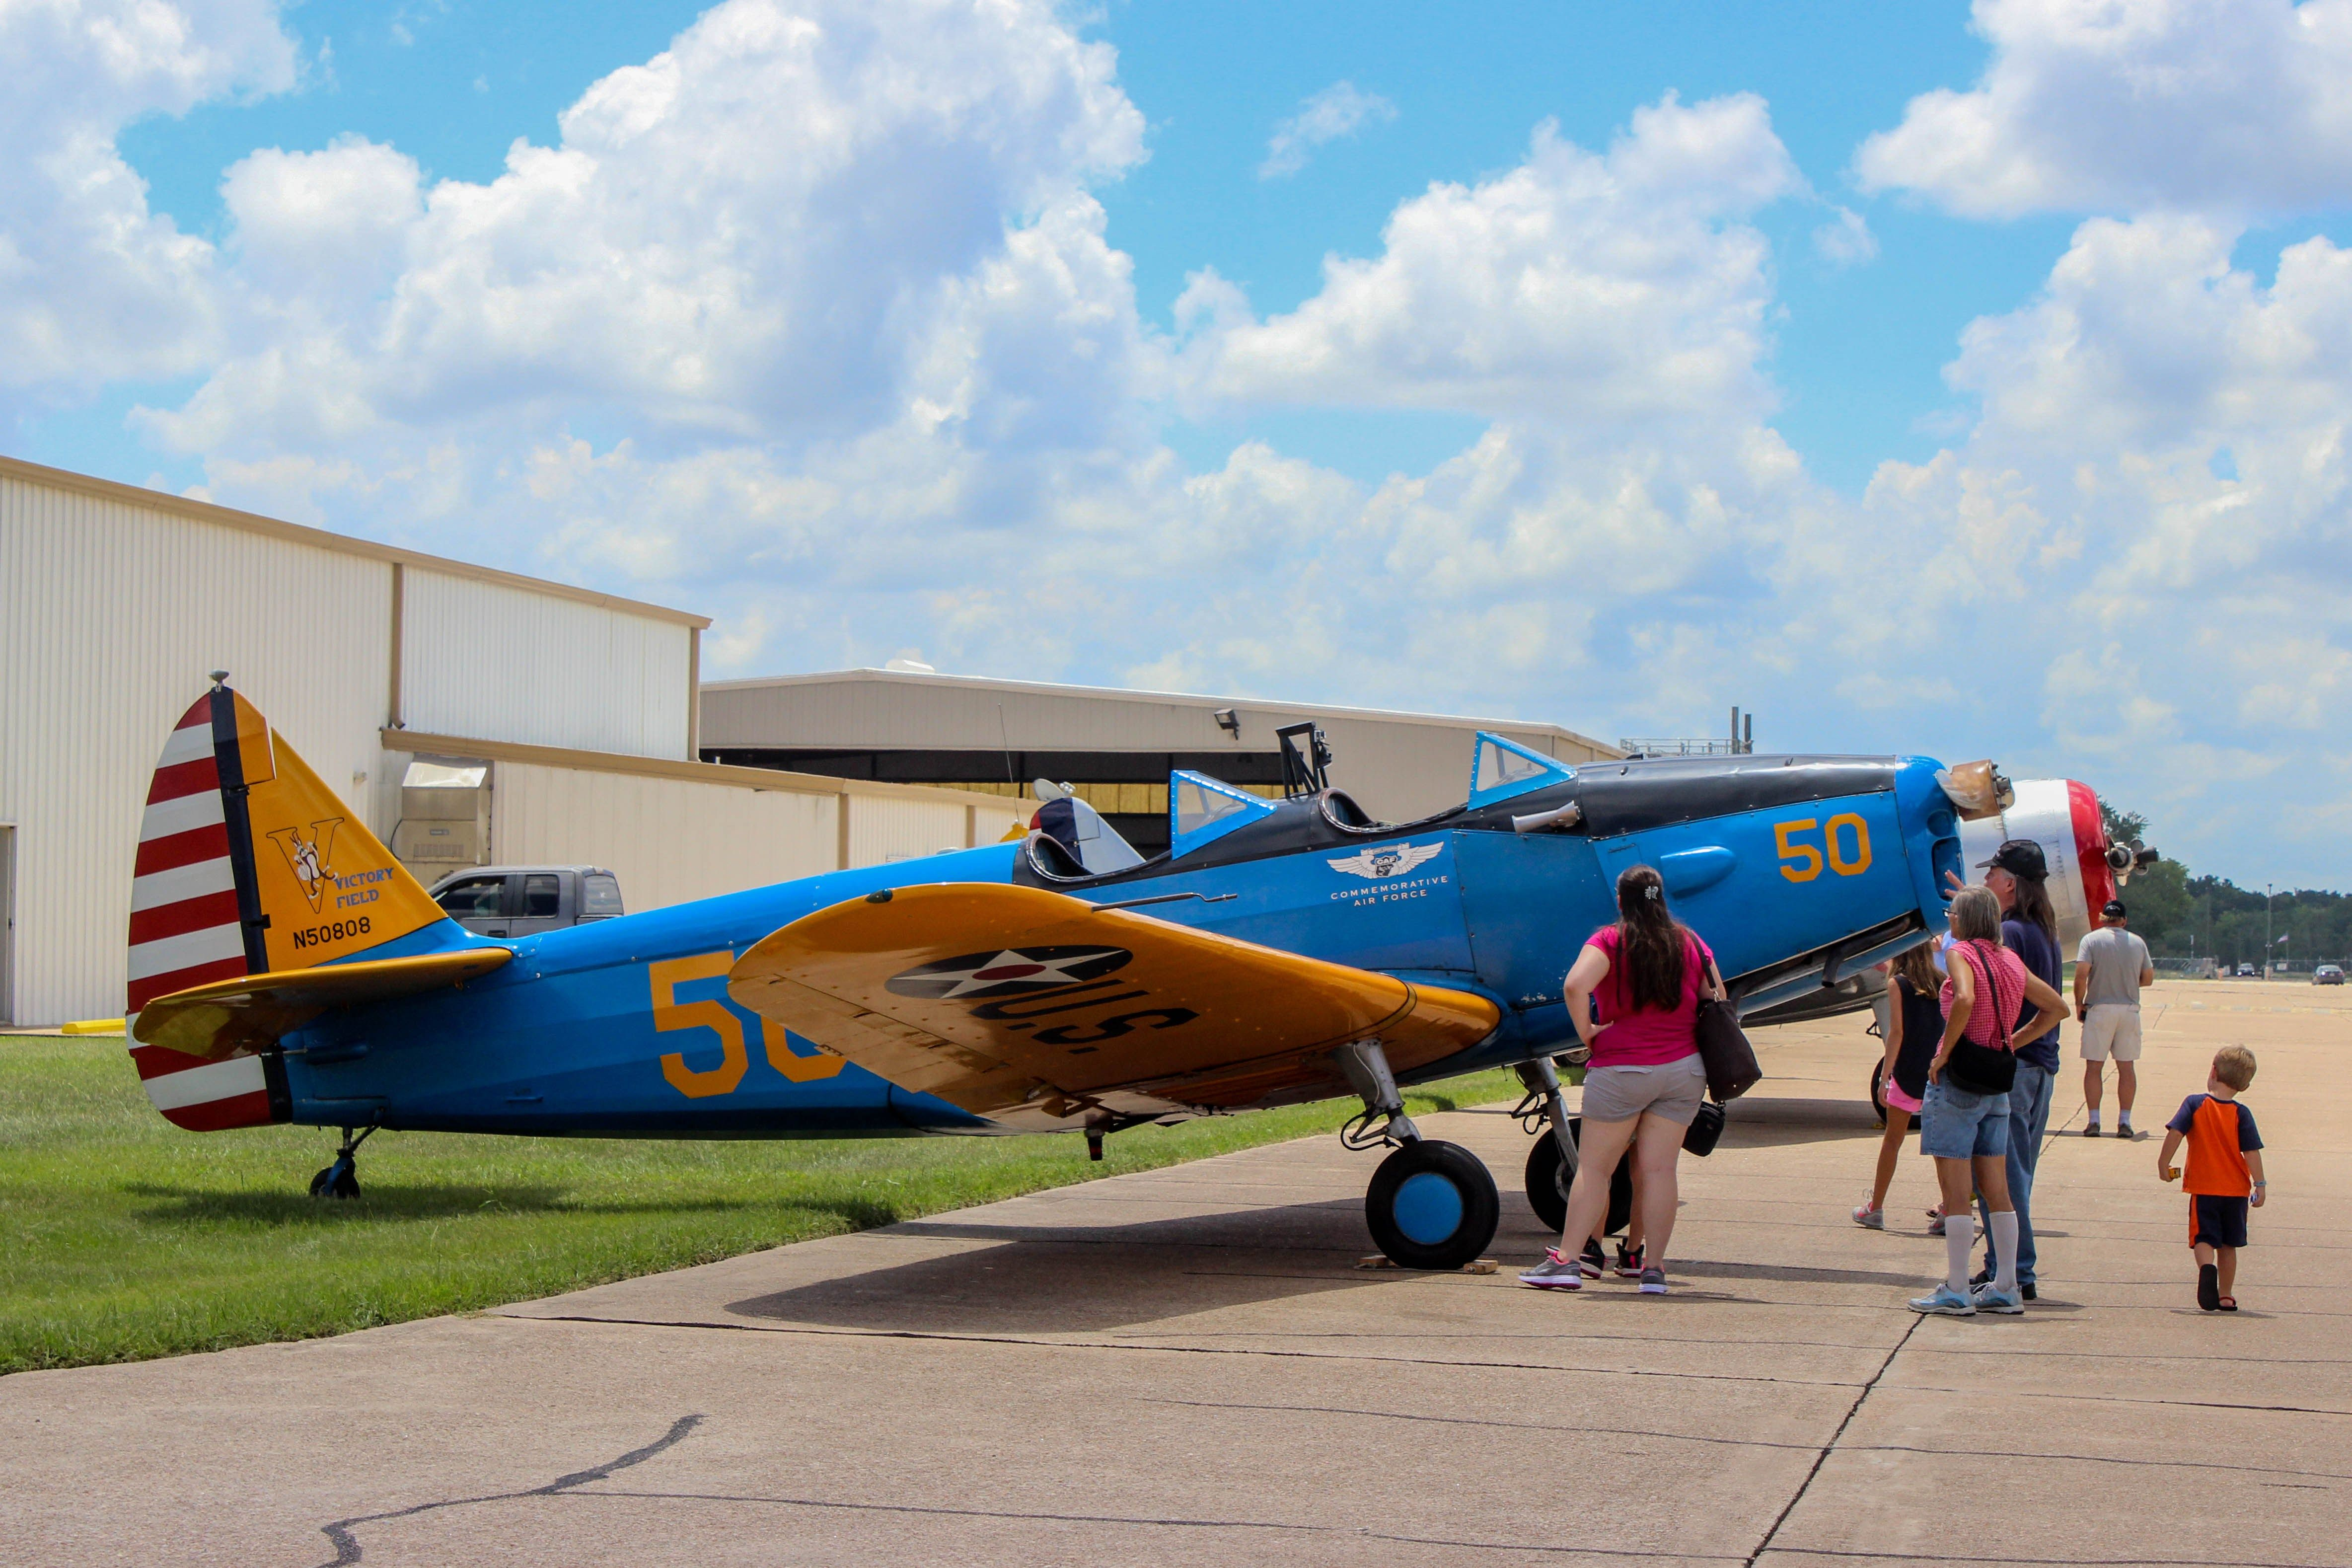 Houston Wing of the Commemorative Air Force18000 Groschke